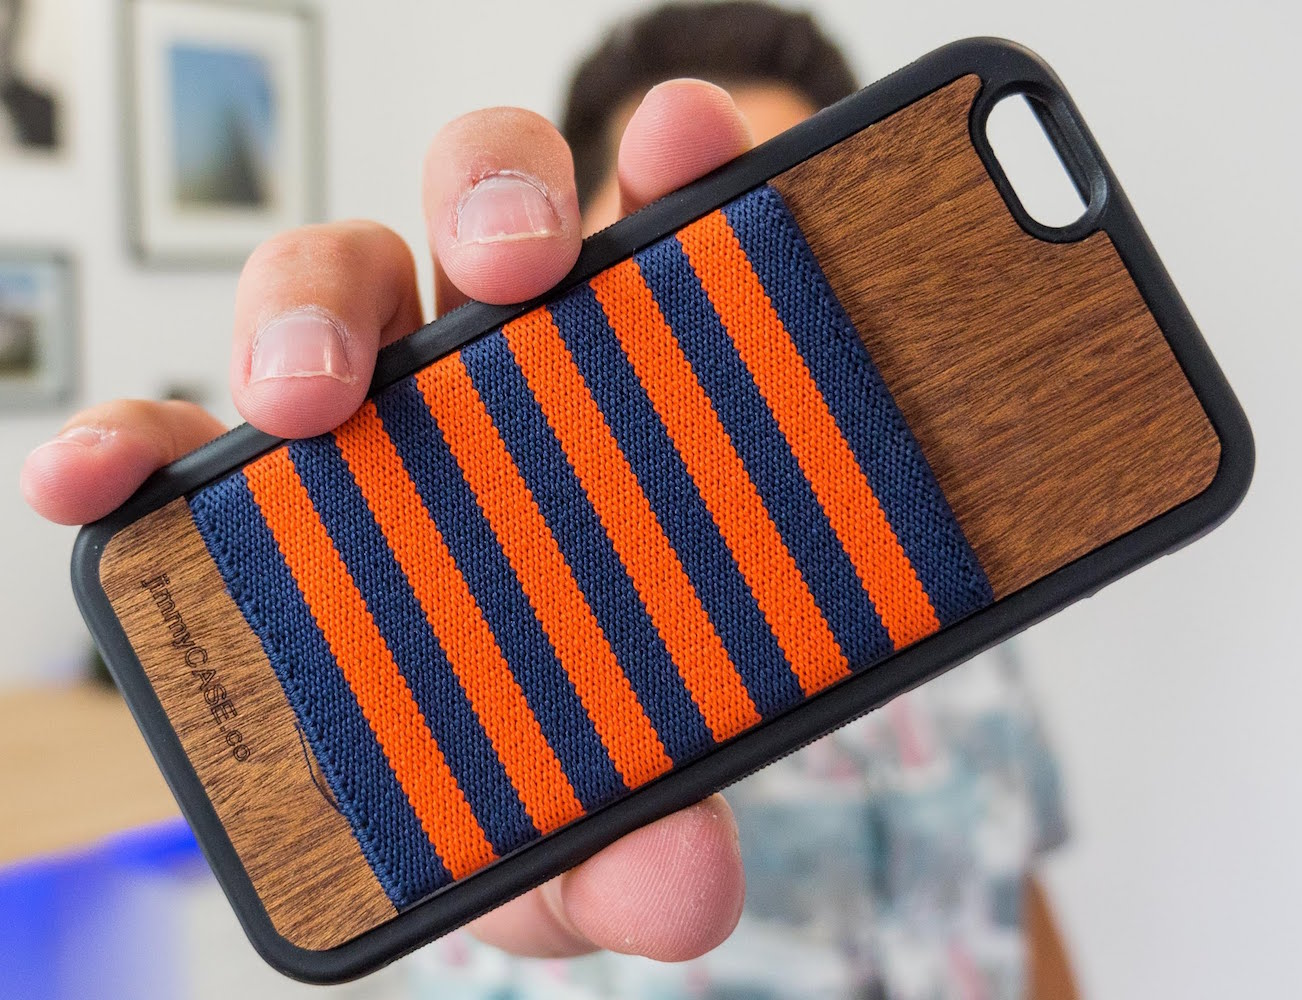 IPhone+6%2FS+Wallet+Case+By+JimmyCASE+%26%238211%3B+With+A+Custom+Woven+Elastic+Pocket